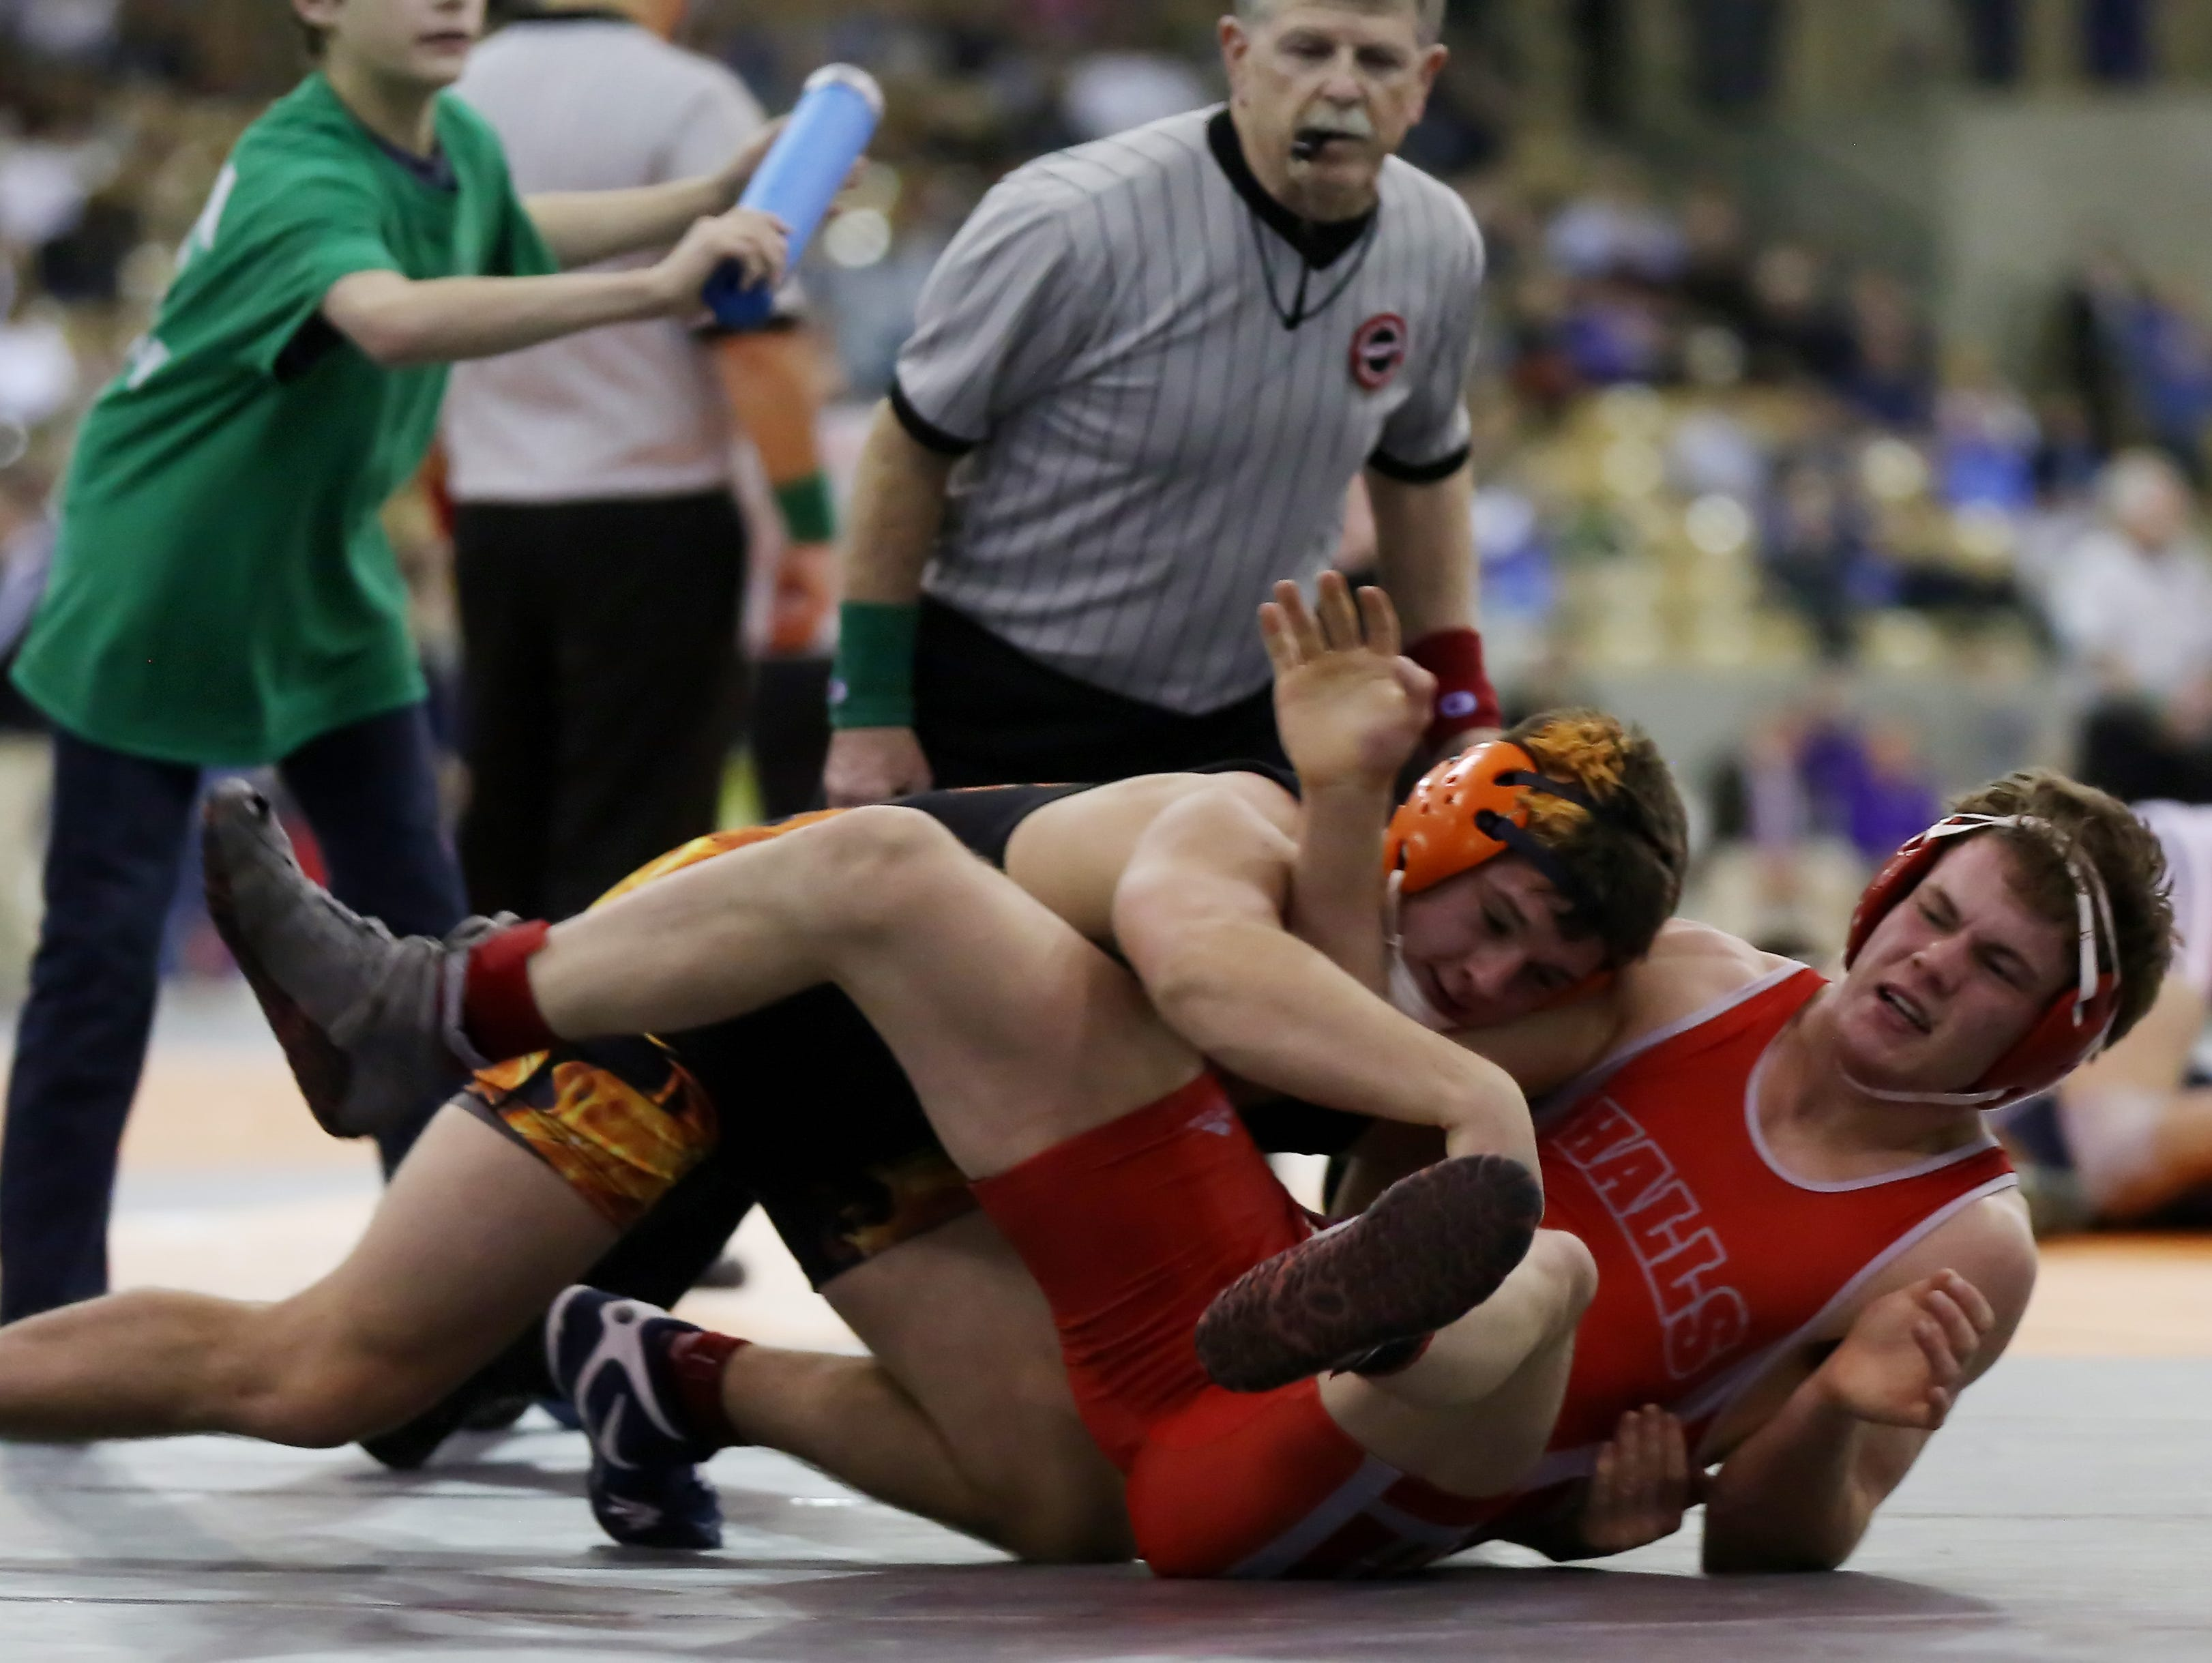 Matthew Sells of Blackman, left, in black and orange, wrestles Colton McMahan of Knoxville Halls, right, in red and white, during the 160-pound semifinals at the TSSAA State Wrestling Tournament Friday.